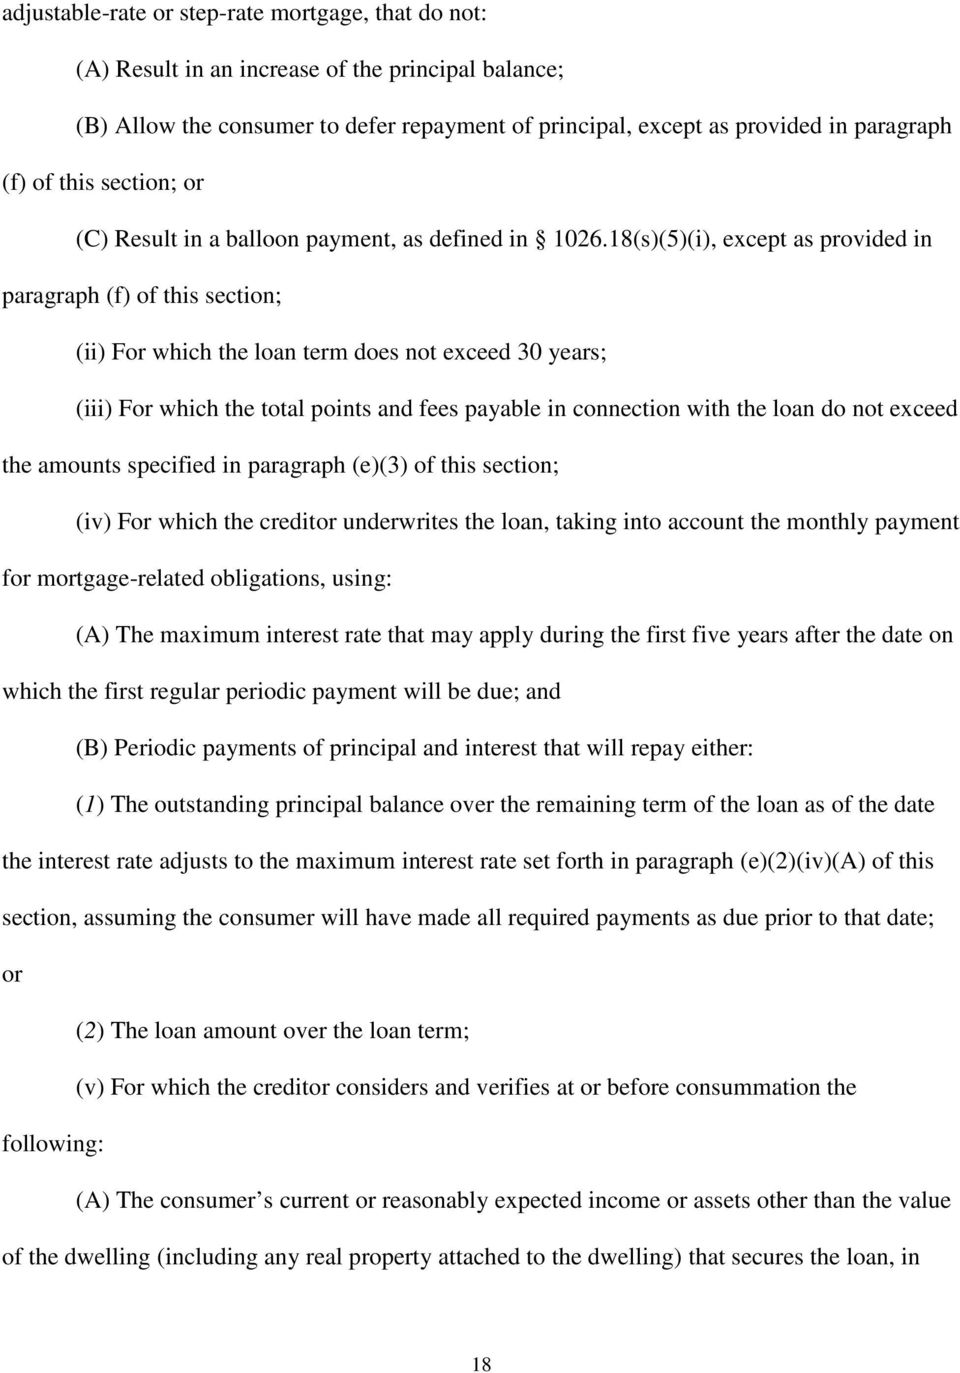 18(s)(5)(i), except as provided in paragraph (f) of this section; (ii) For which the loan term does not exceed 30 years; (iii) For which the total points and fees payable in connection with the loan